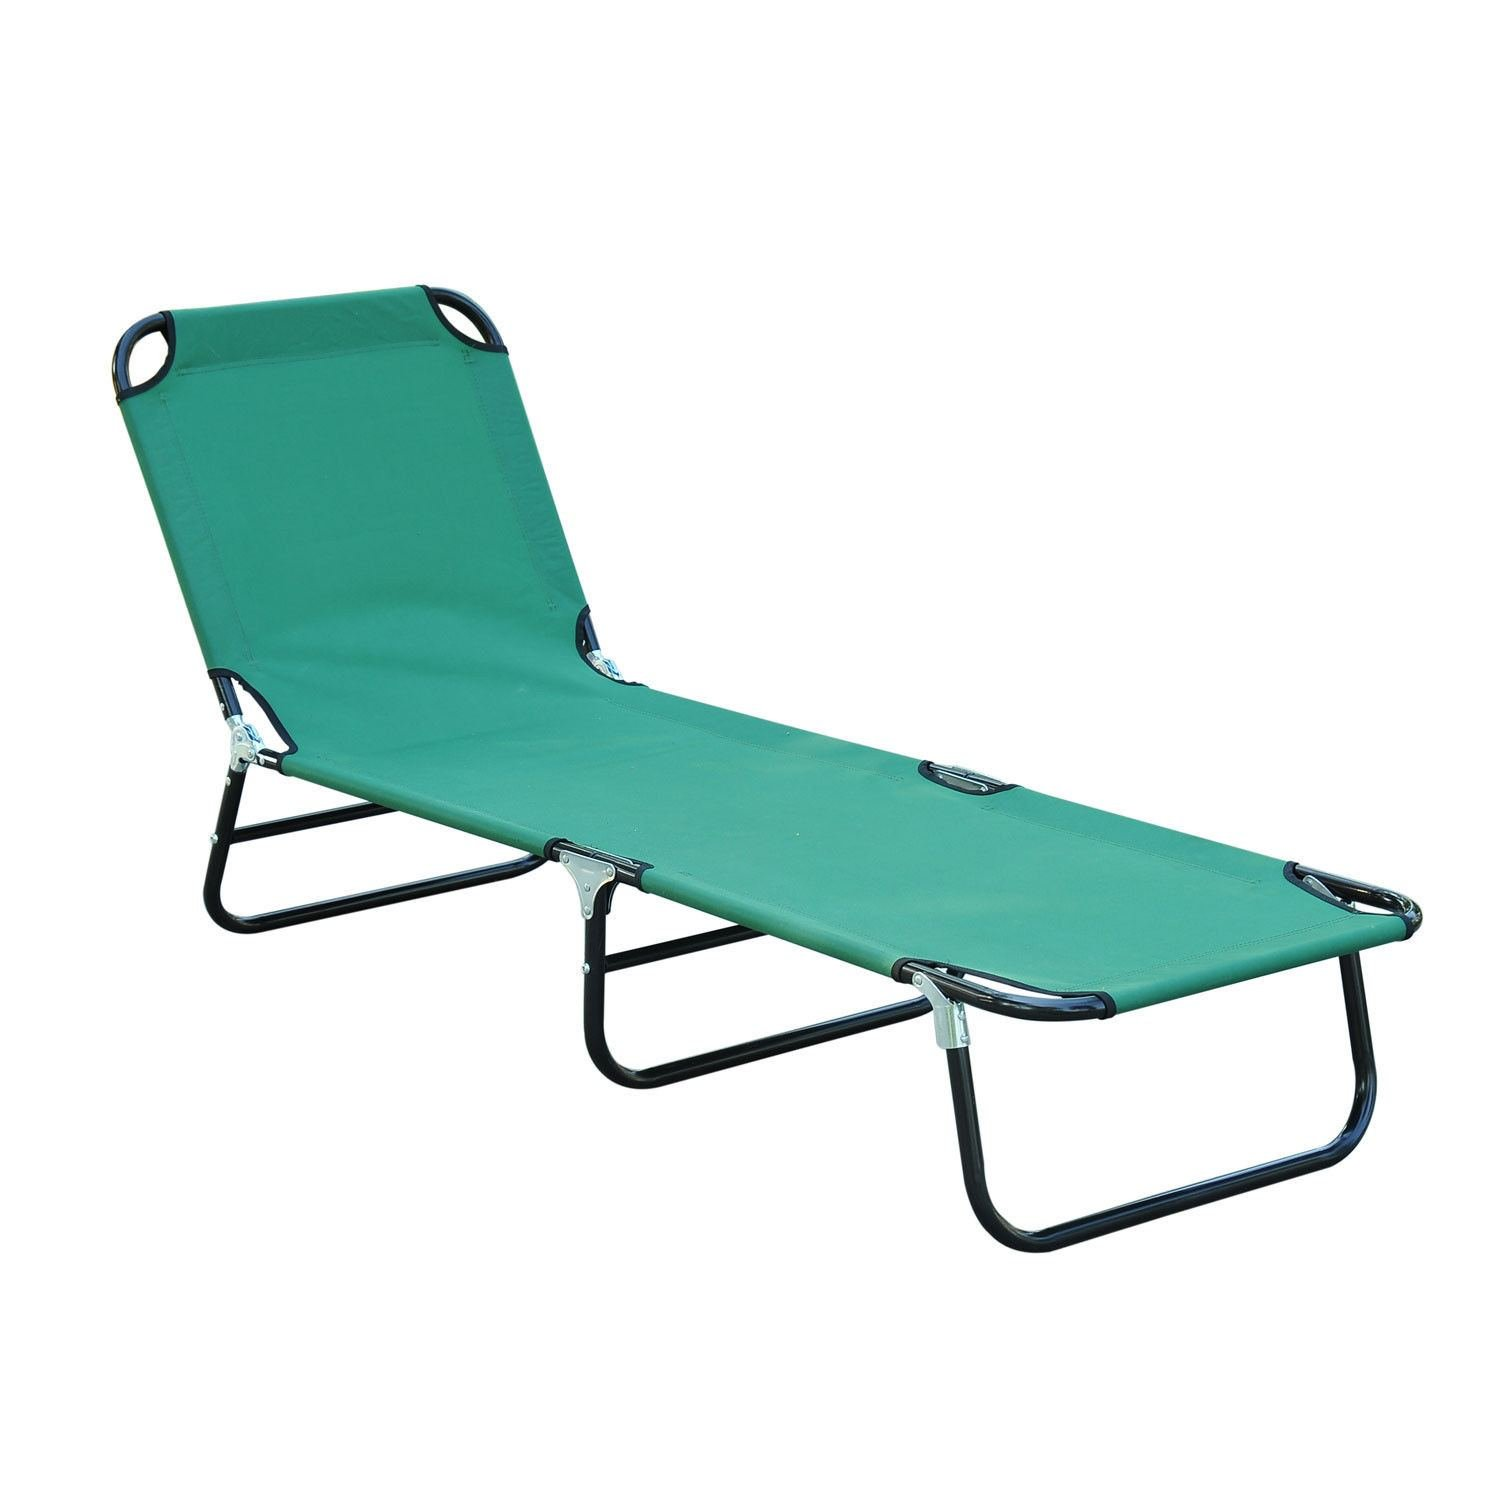 Folding outdoor lounge chair - Amazon Com Outdoor Sun Chaise Lounge Recliner Patio Camping Cot Bed Beach Pool Chair Fold Garden Outdoor